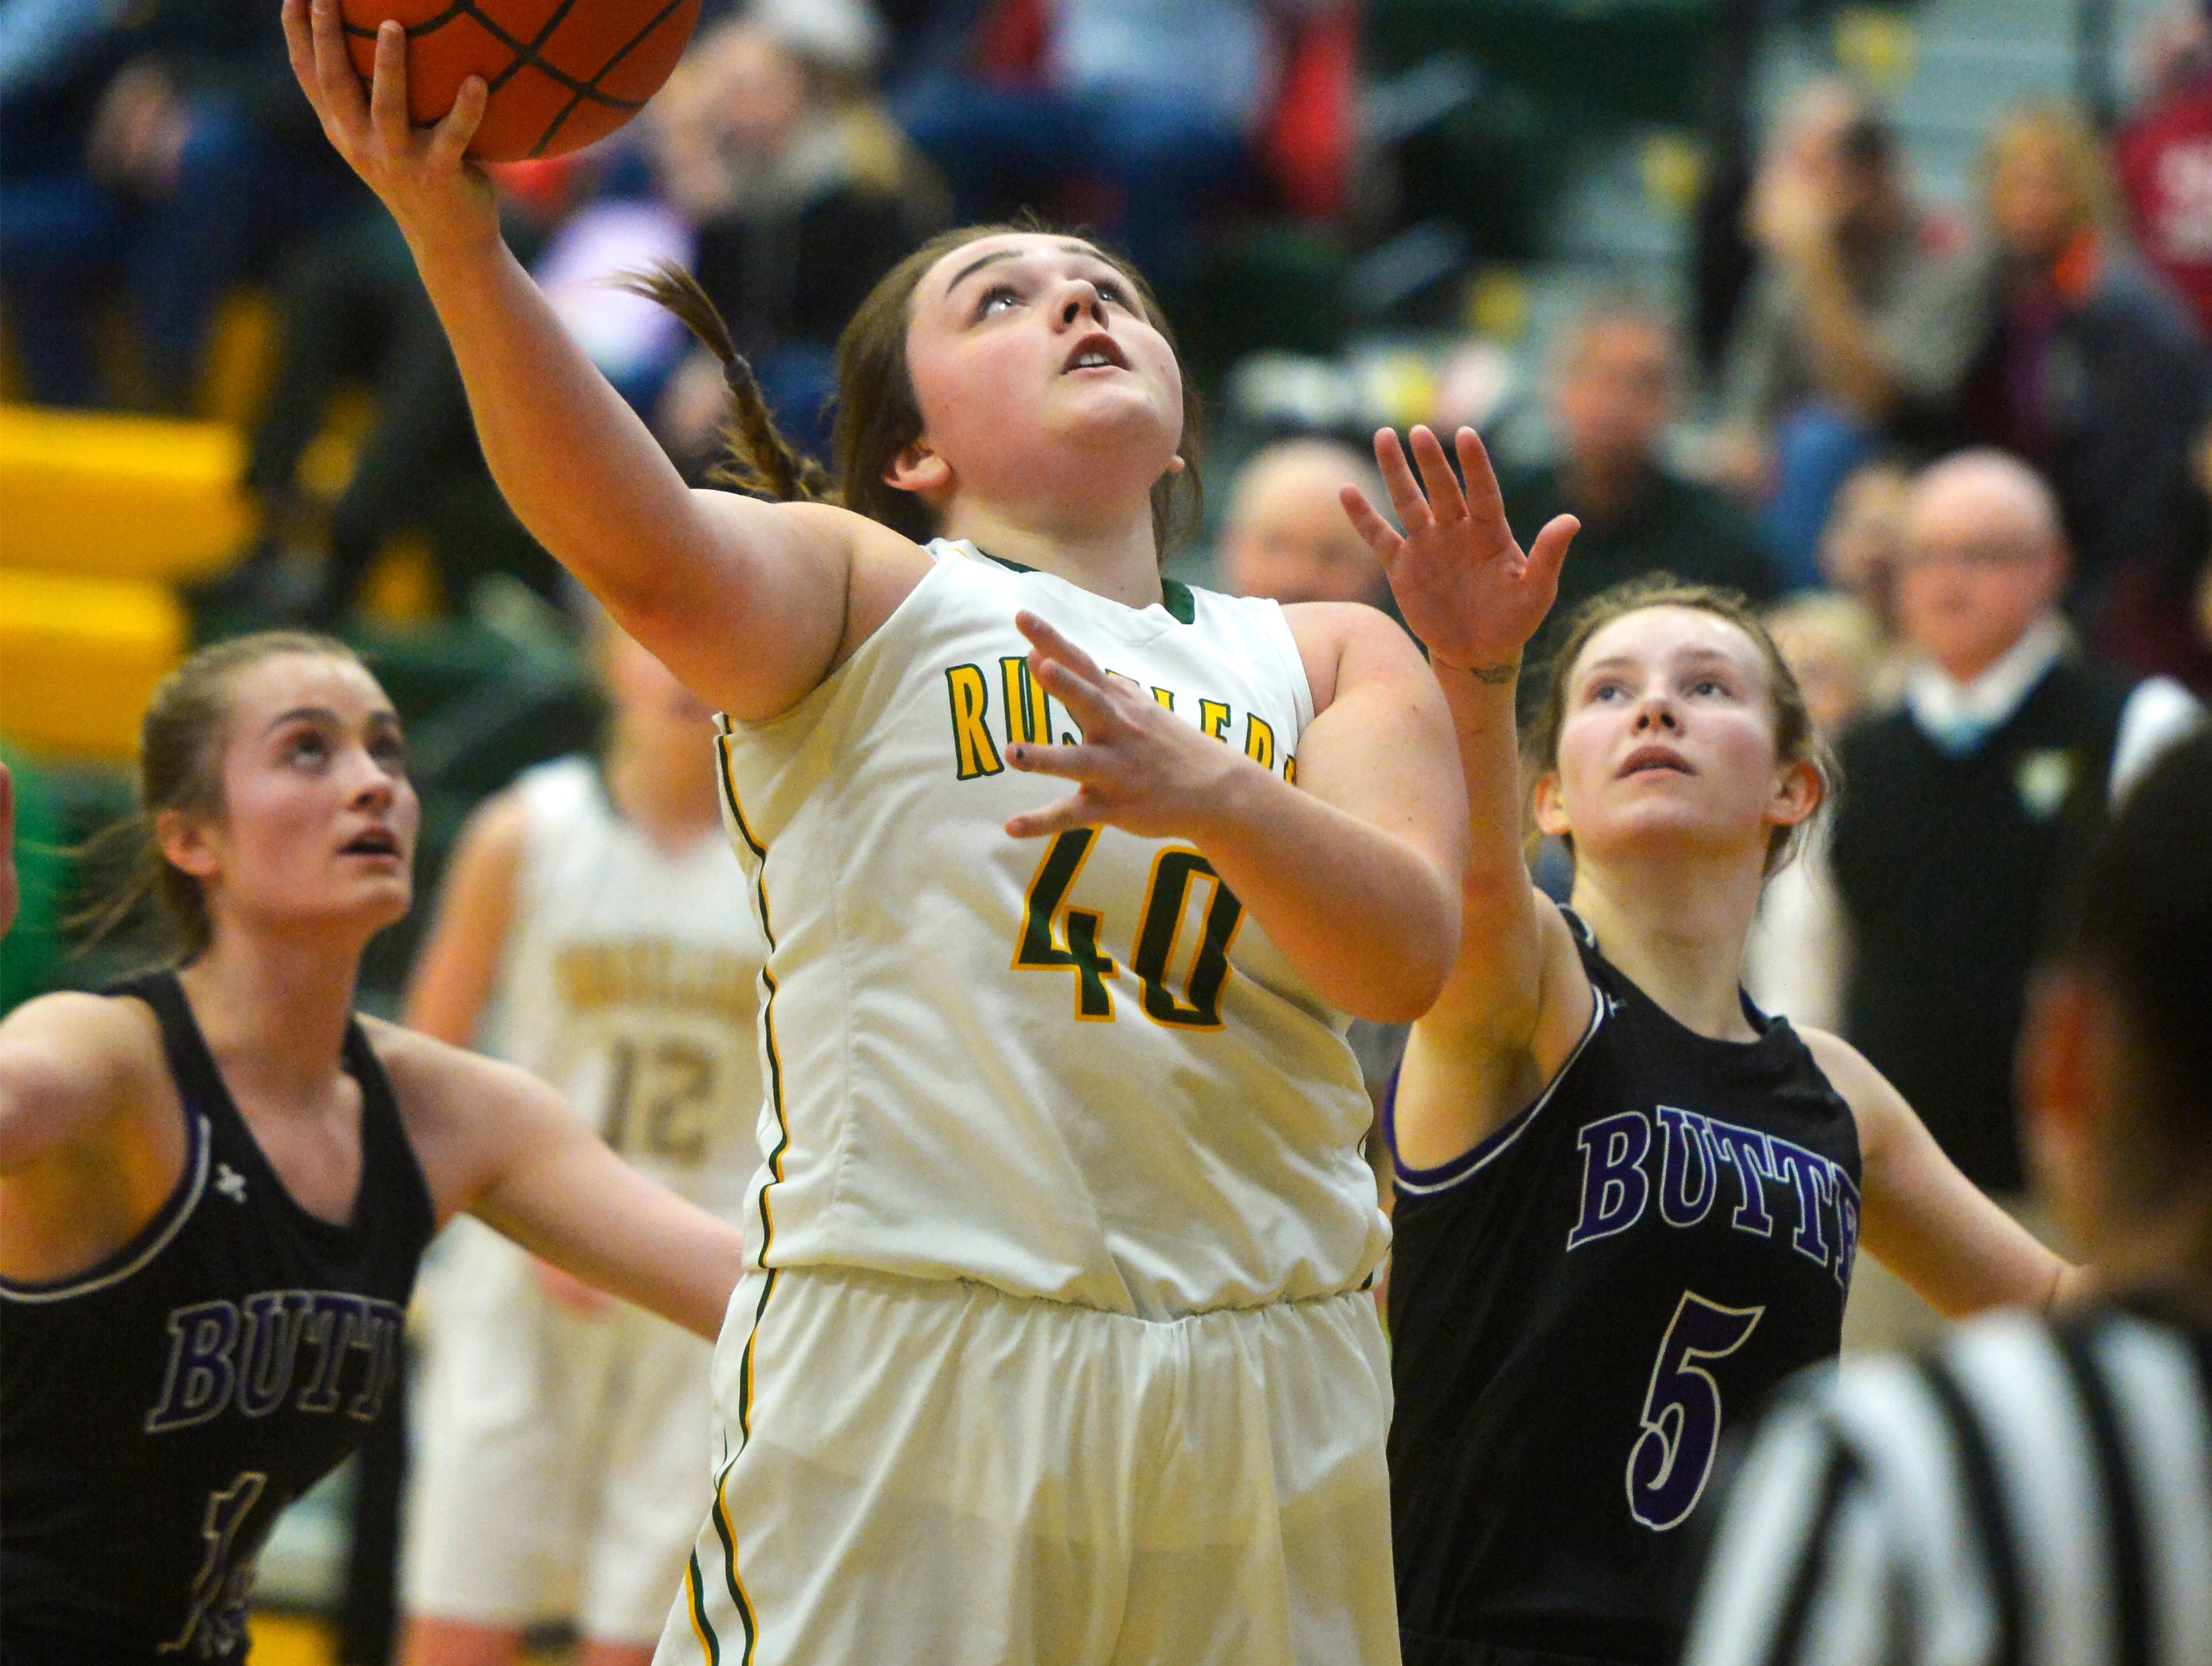 CMR's Marley Calliham shoots a layup during the girls semifinal game of the Eastern AA Basketball Tournament against Butte at the CMR Fieldhouse, Friday.